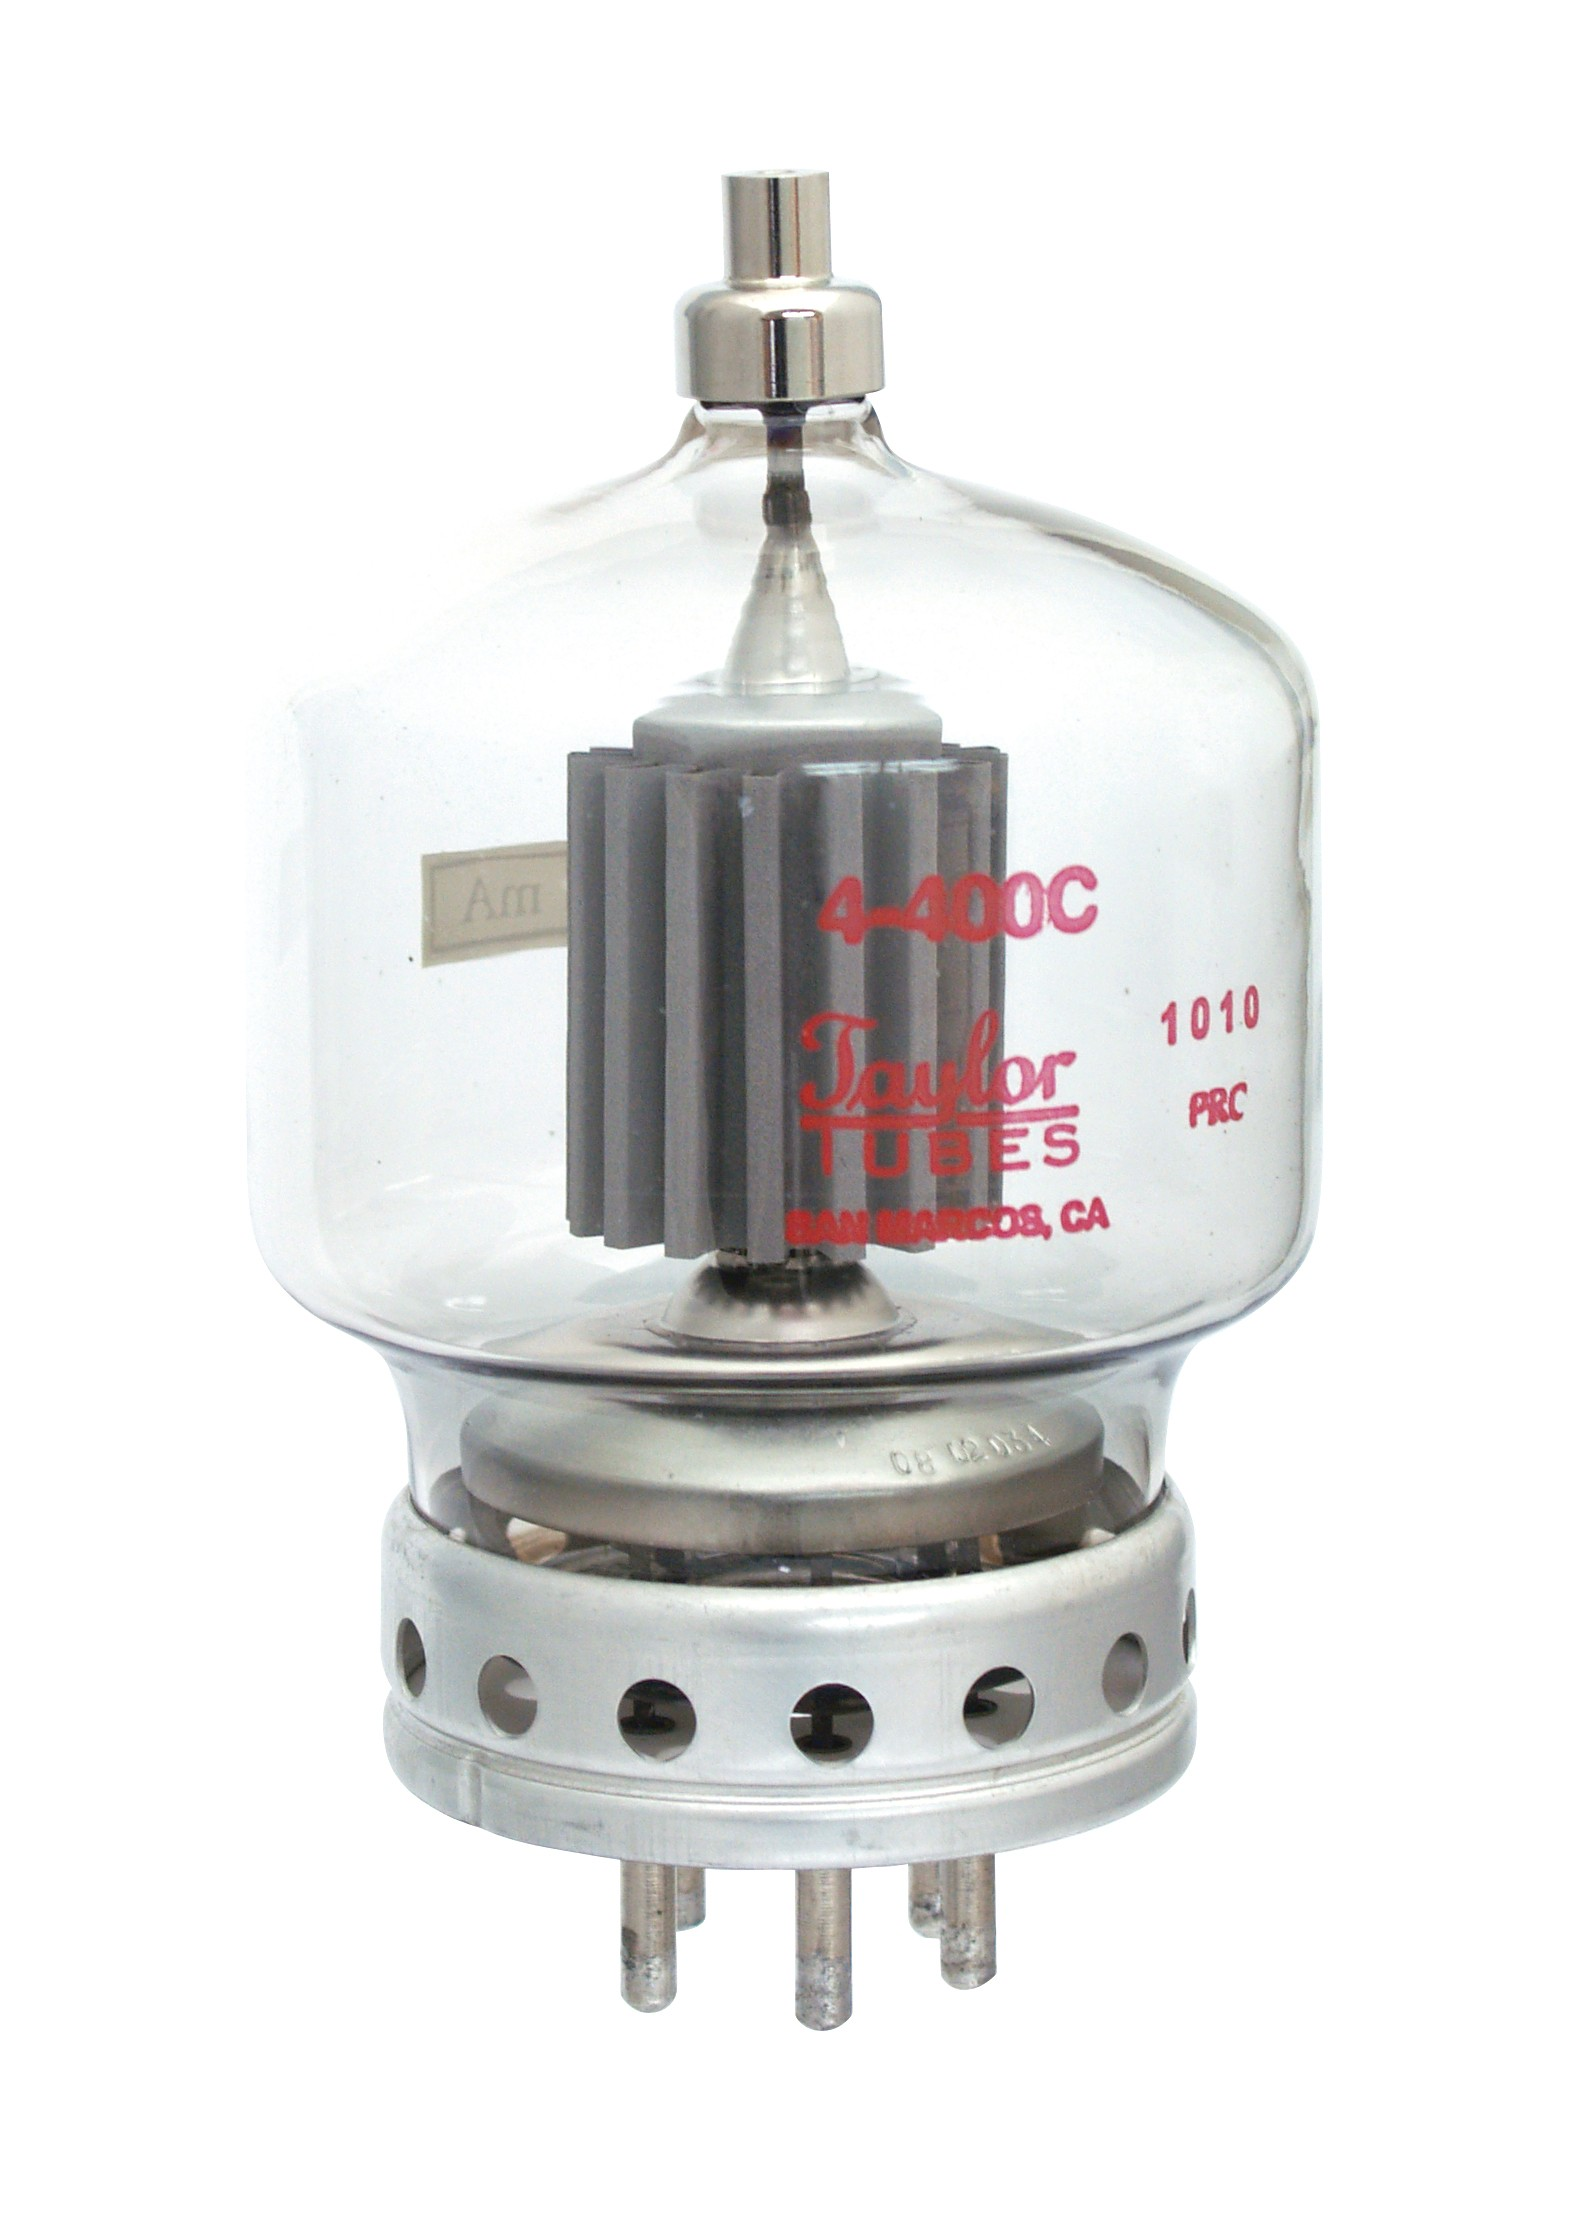 4-400C-TAY  Transmitting Tube, Taylor Brand